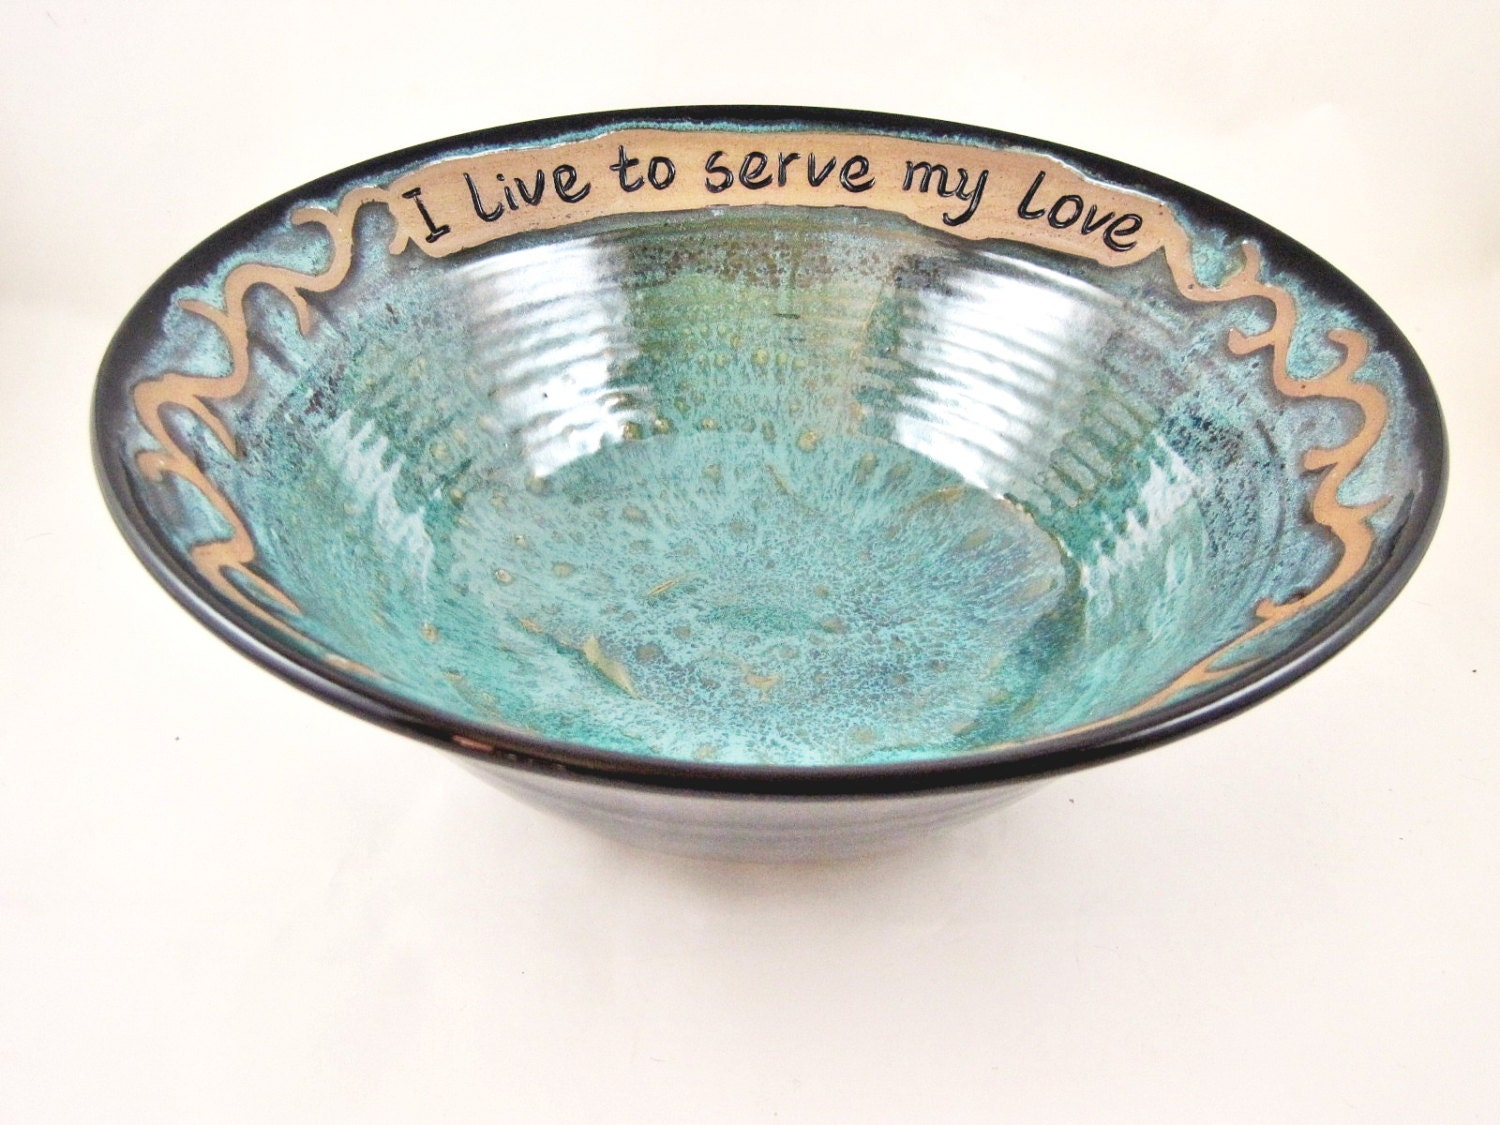 9th Anniversary Pottery For Wedding: Pottery Wedding Gift Handmade Pottery Bowl 9th Anniversary